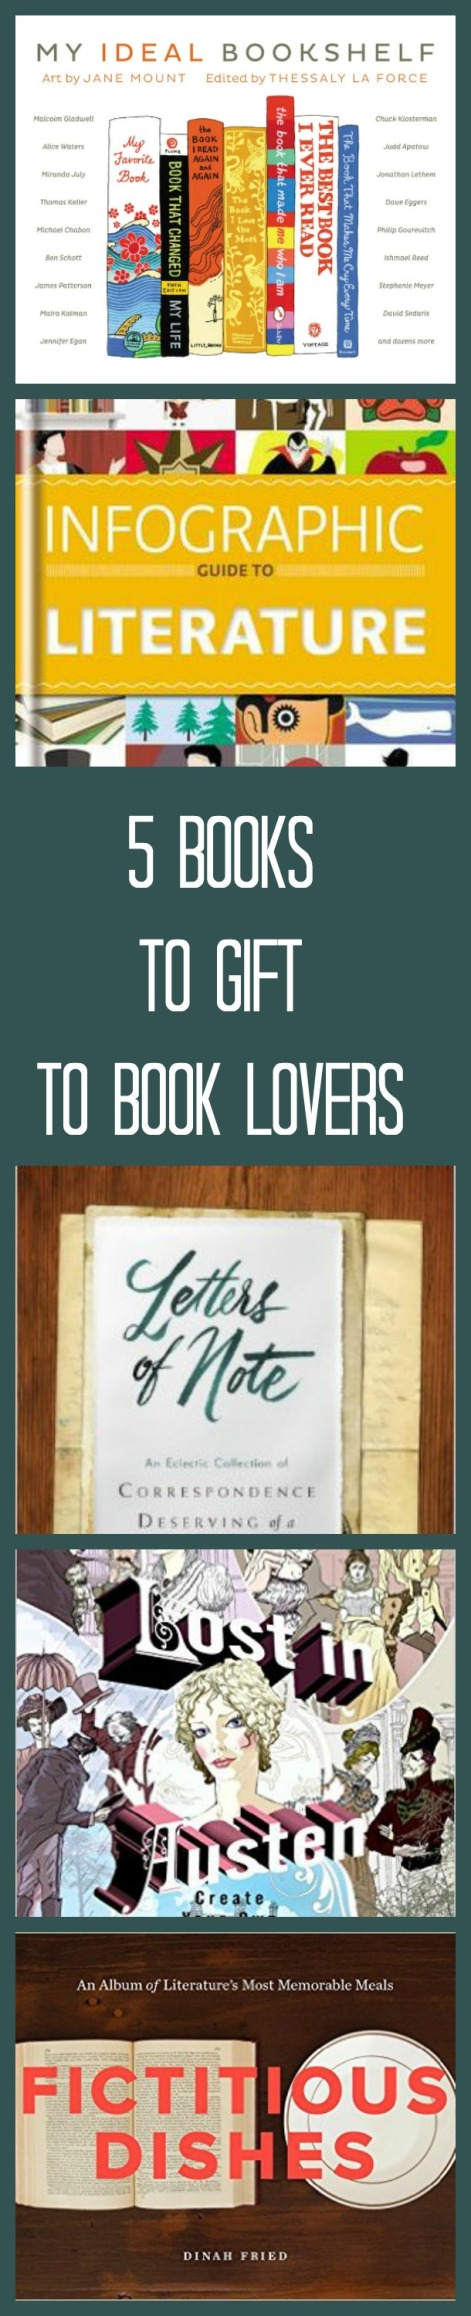 books-to-gift